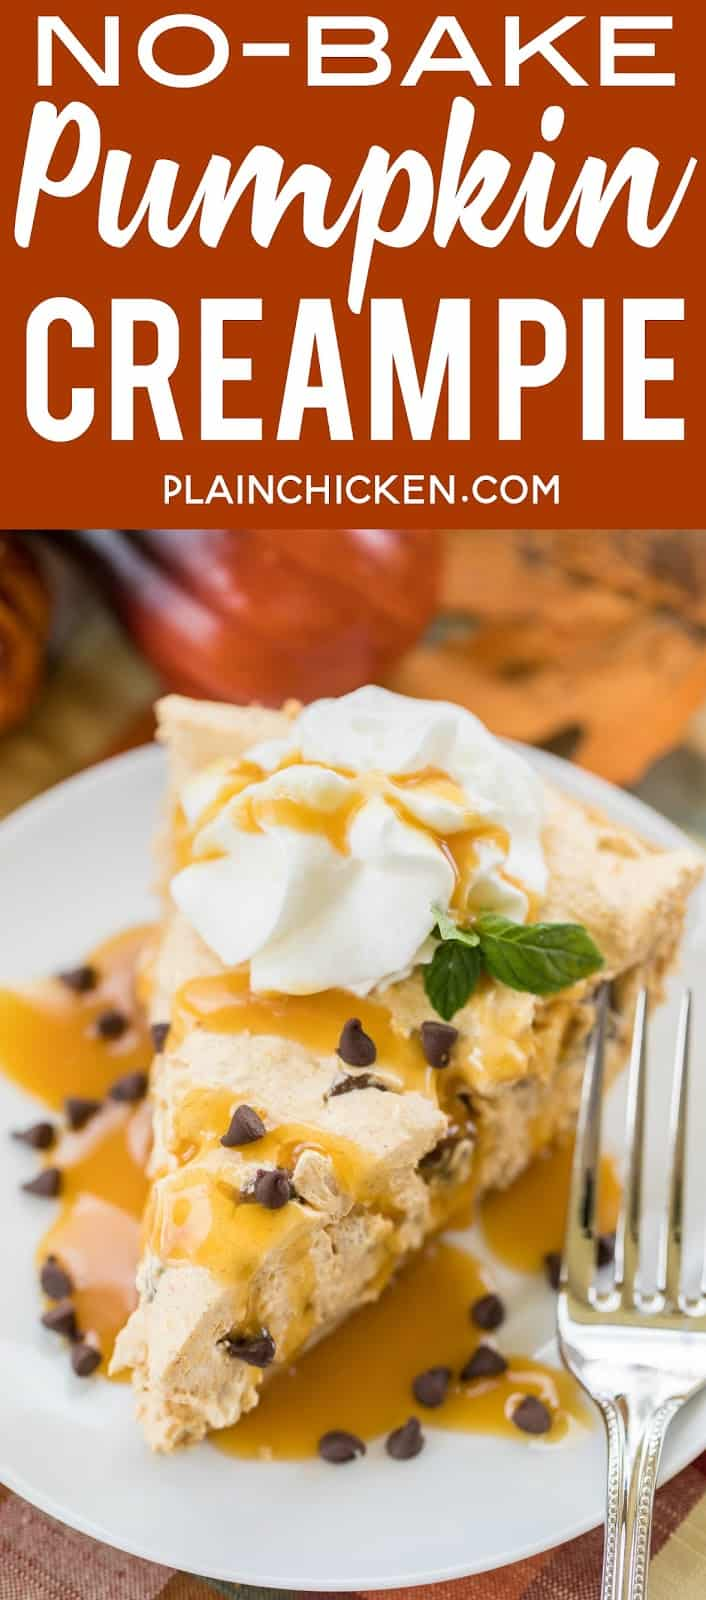 No-Bake Pumpkin Cream Pie - this dessert is to-die-for good!! Only takes a minute to make. Perfect for fall parties and Thanksgiving dinner. Pudding, pumpkin, pumpkin spice, chocolate chips, almonds, cool whip in a graham cracker crust. Top pie with whipped cream and caramel sauce. This is CRAZY good! #easy #dessert #pumpkinpie